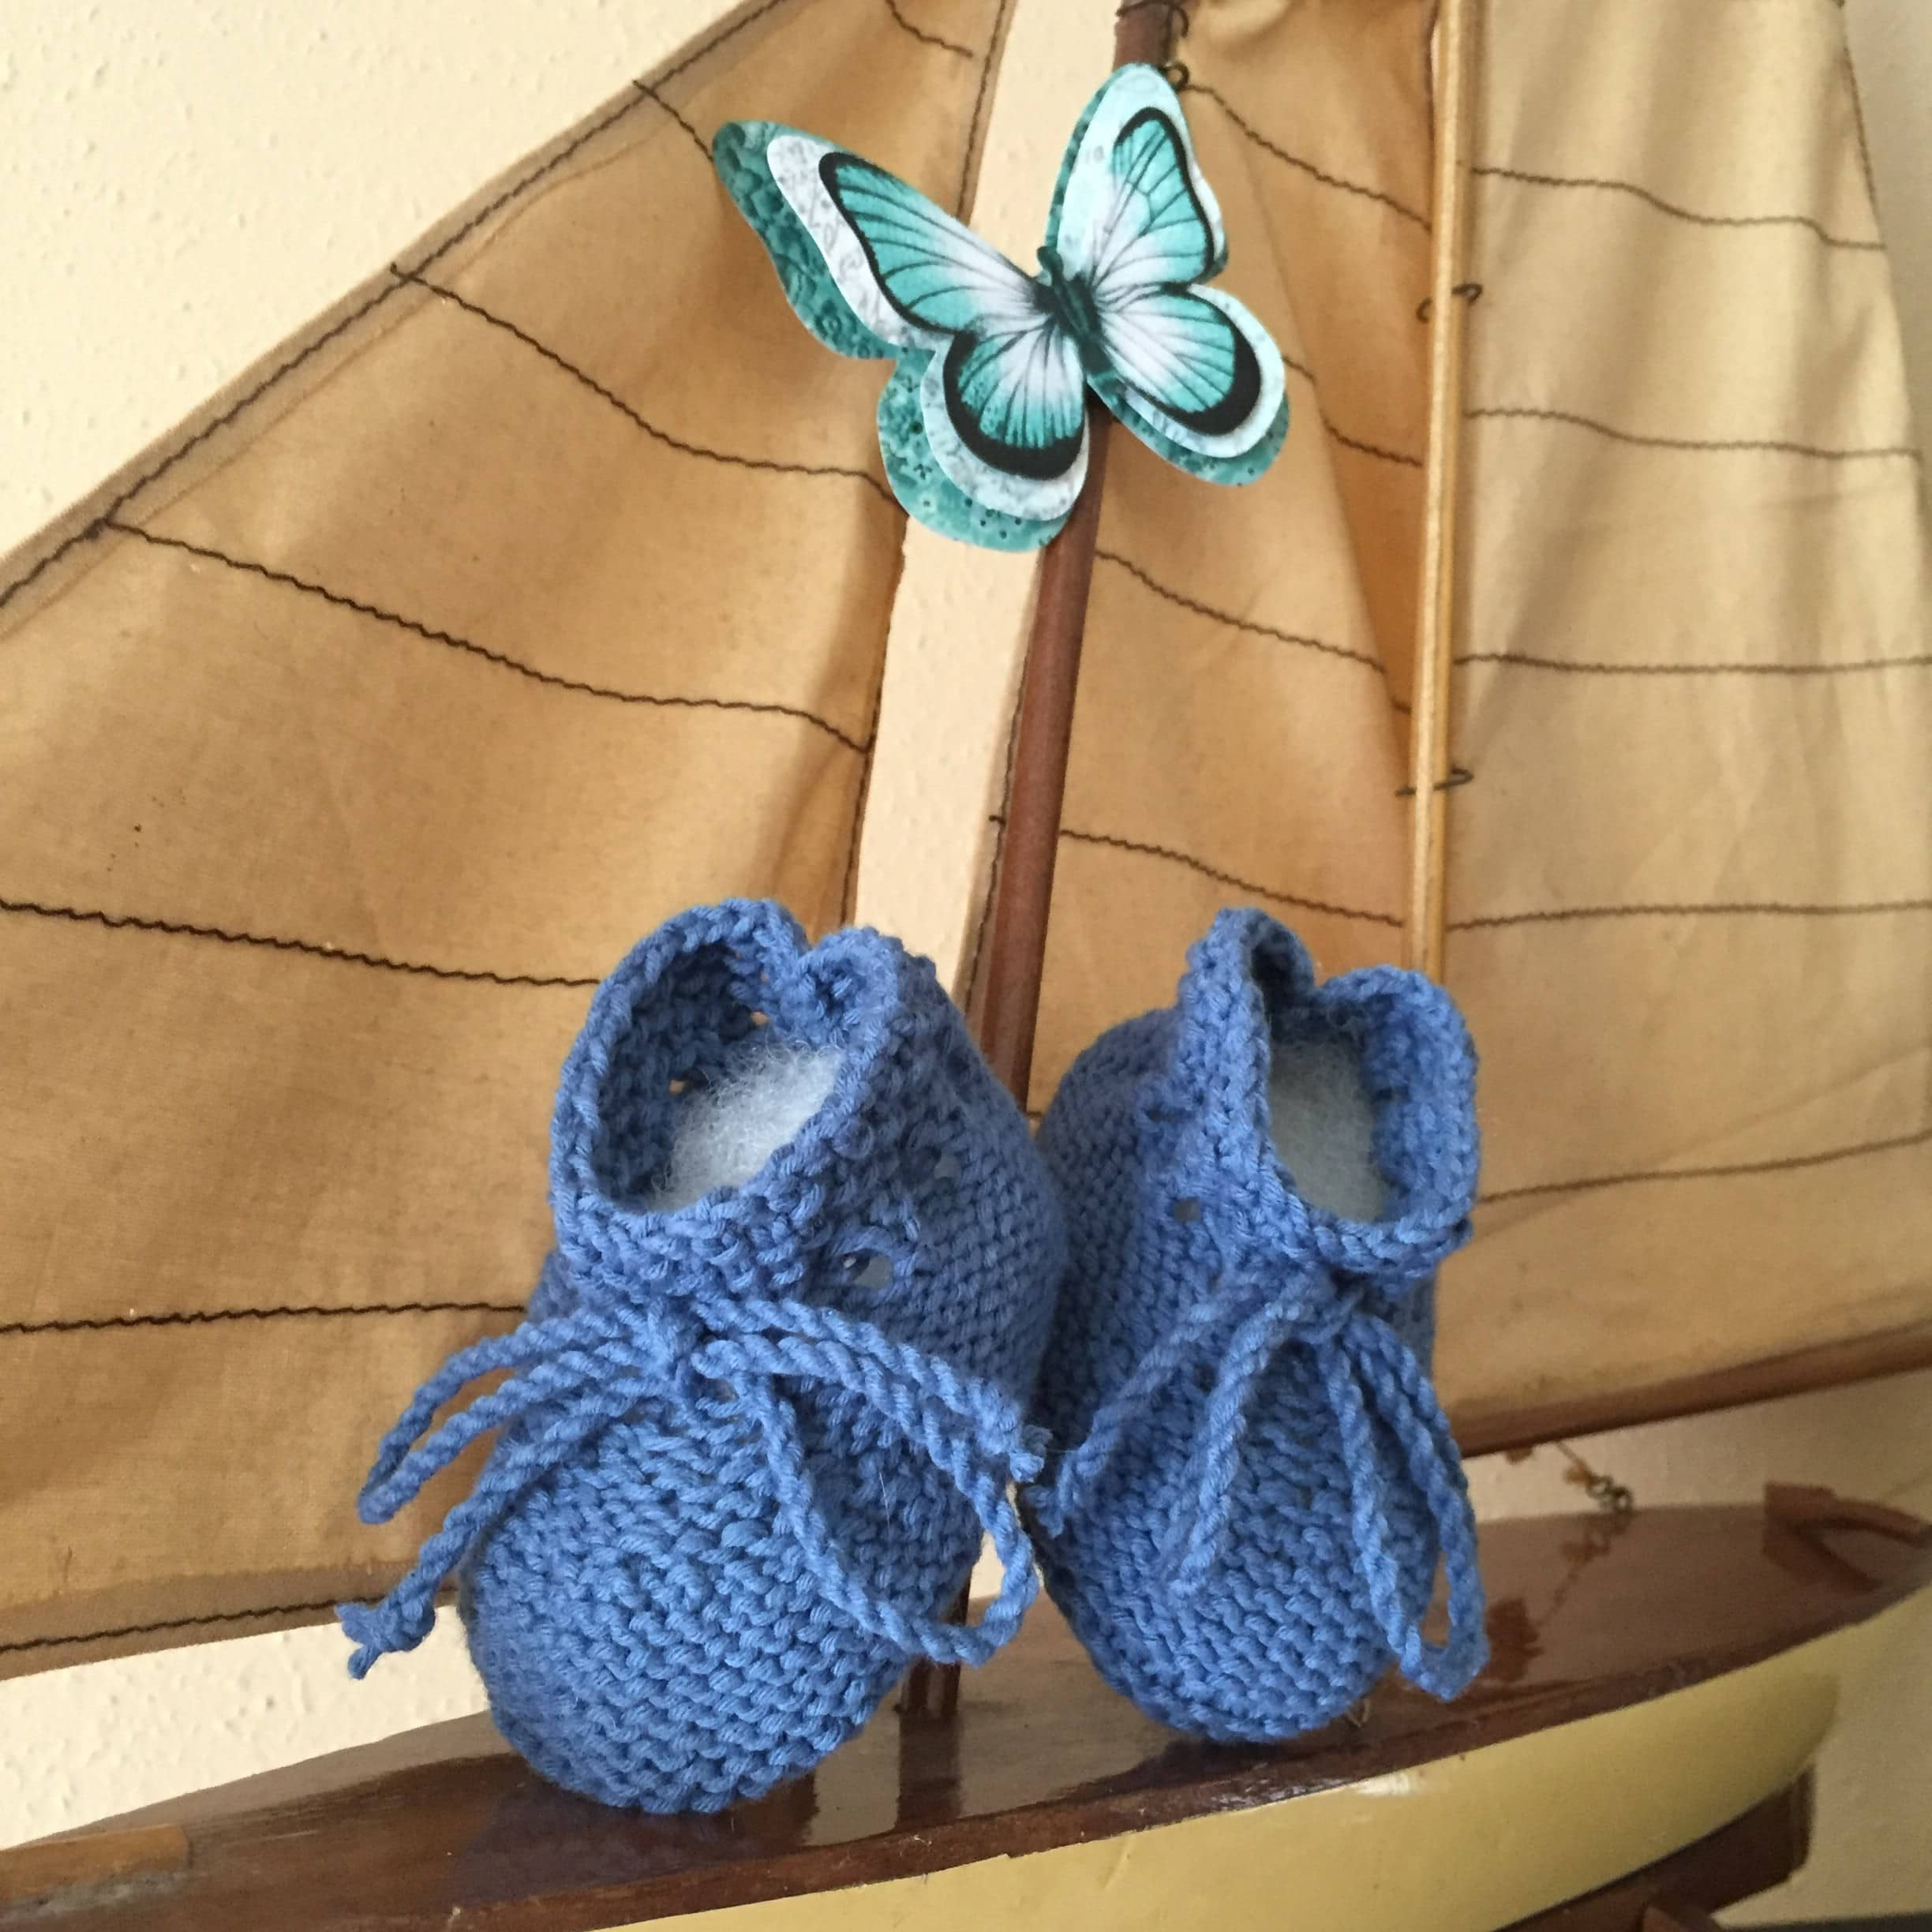 DIY – Baby bootees. Free booties pattern.